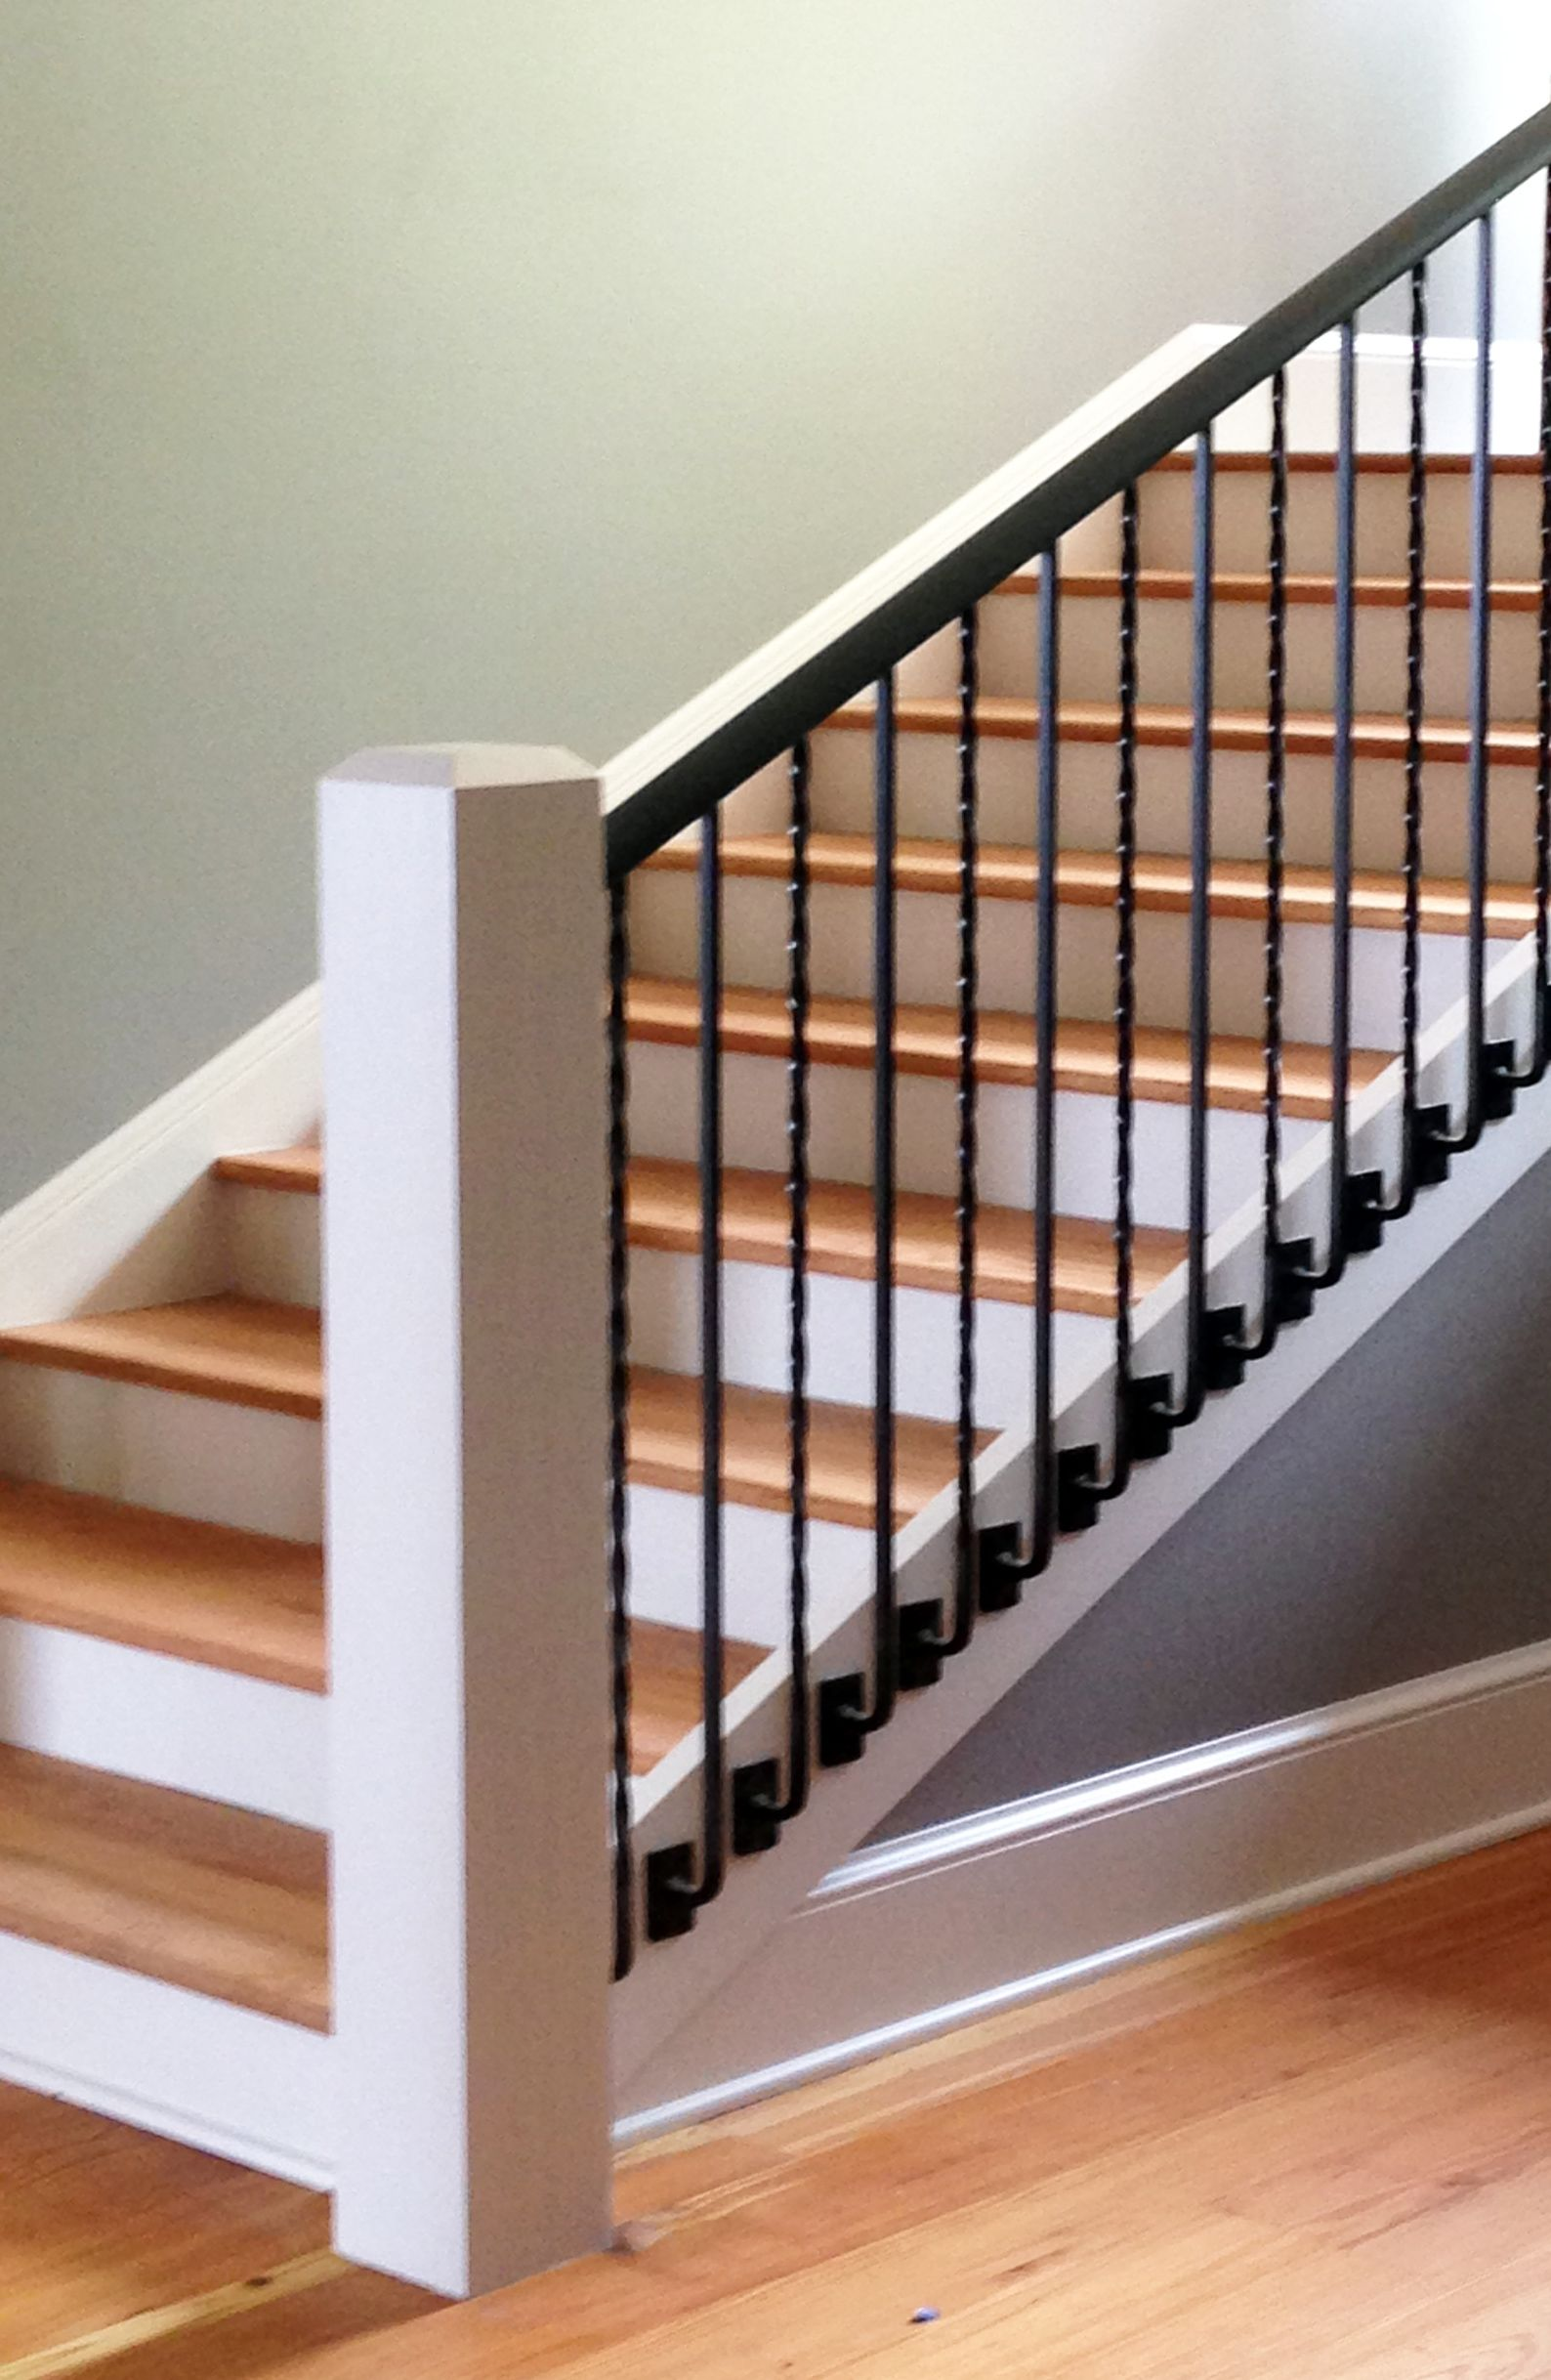 Custom Metal Handrail System With Side Mount Balusters | Stair Railing And Balusters | Brushed Nickel | Free Standing | Inexpensive | Deck | Wood